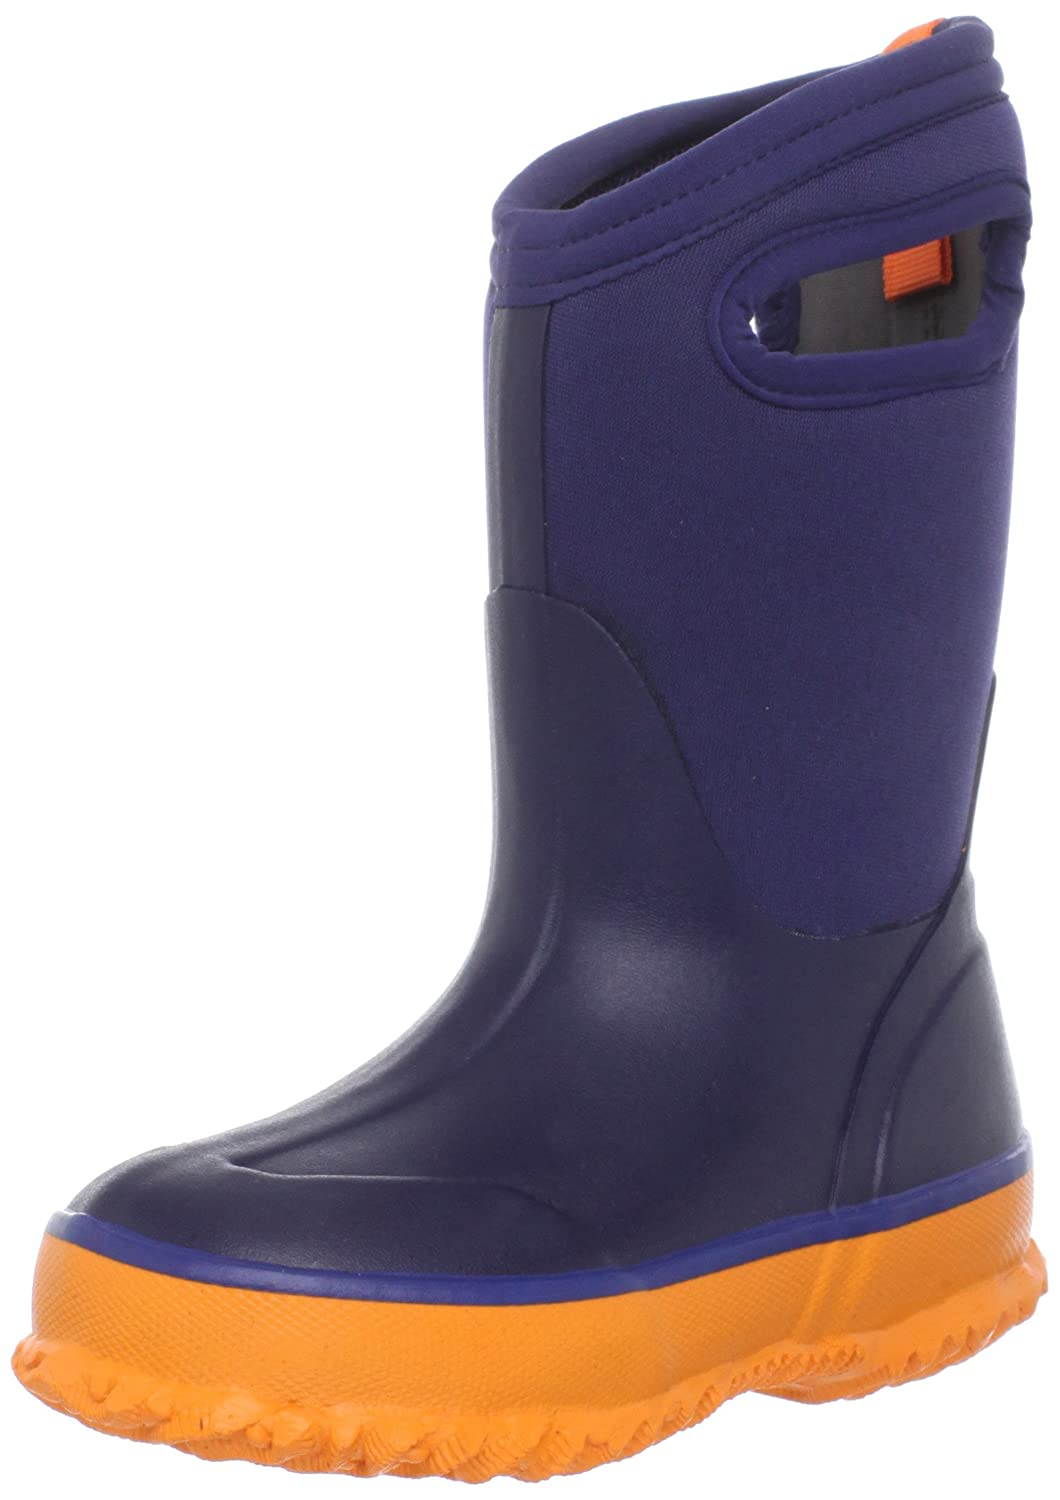 Bogs Kids Classic in blau orange Kinder Winterstiefel Regenstiefel kaufen